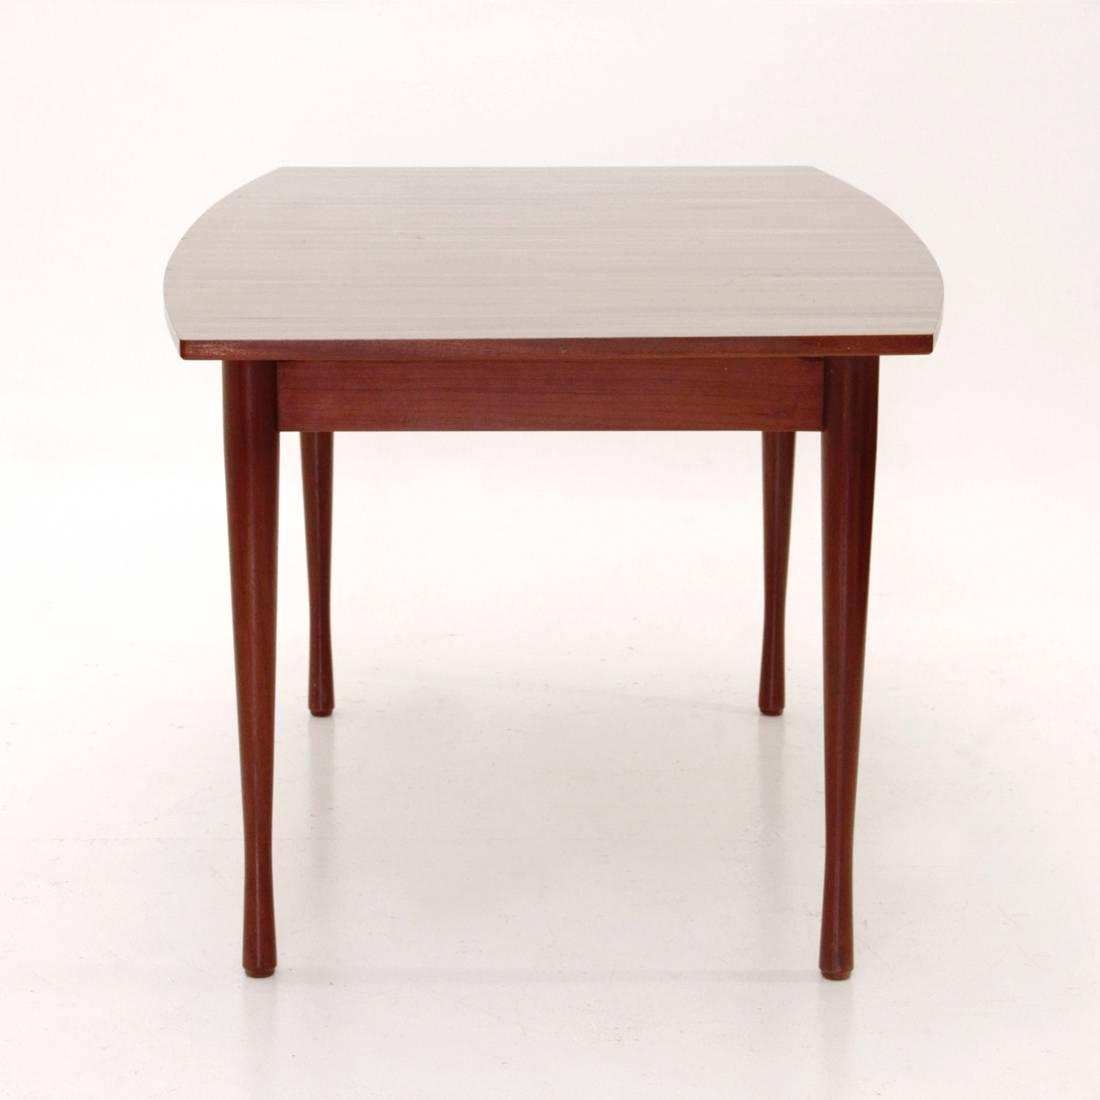 Italian teak extensible table 1960s for sale at 1stdibs for Dining table extensible